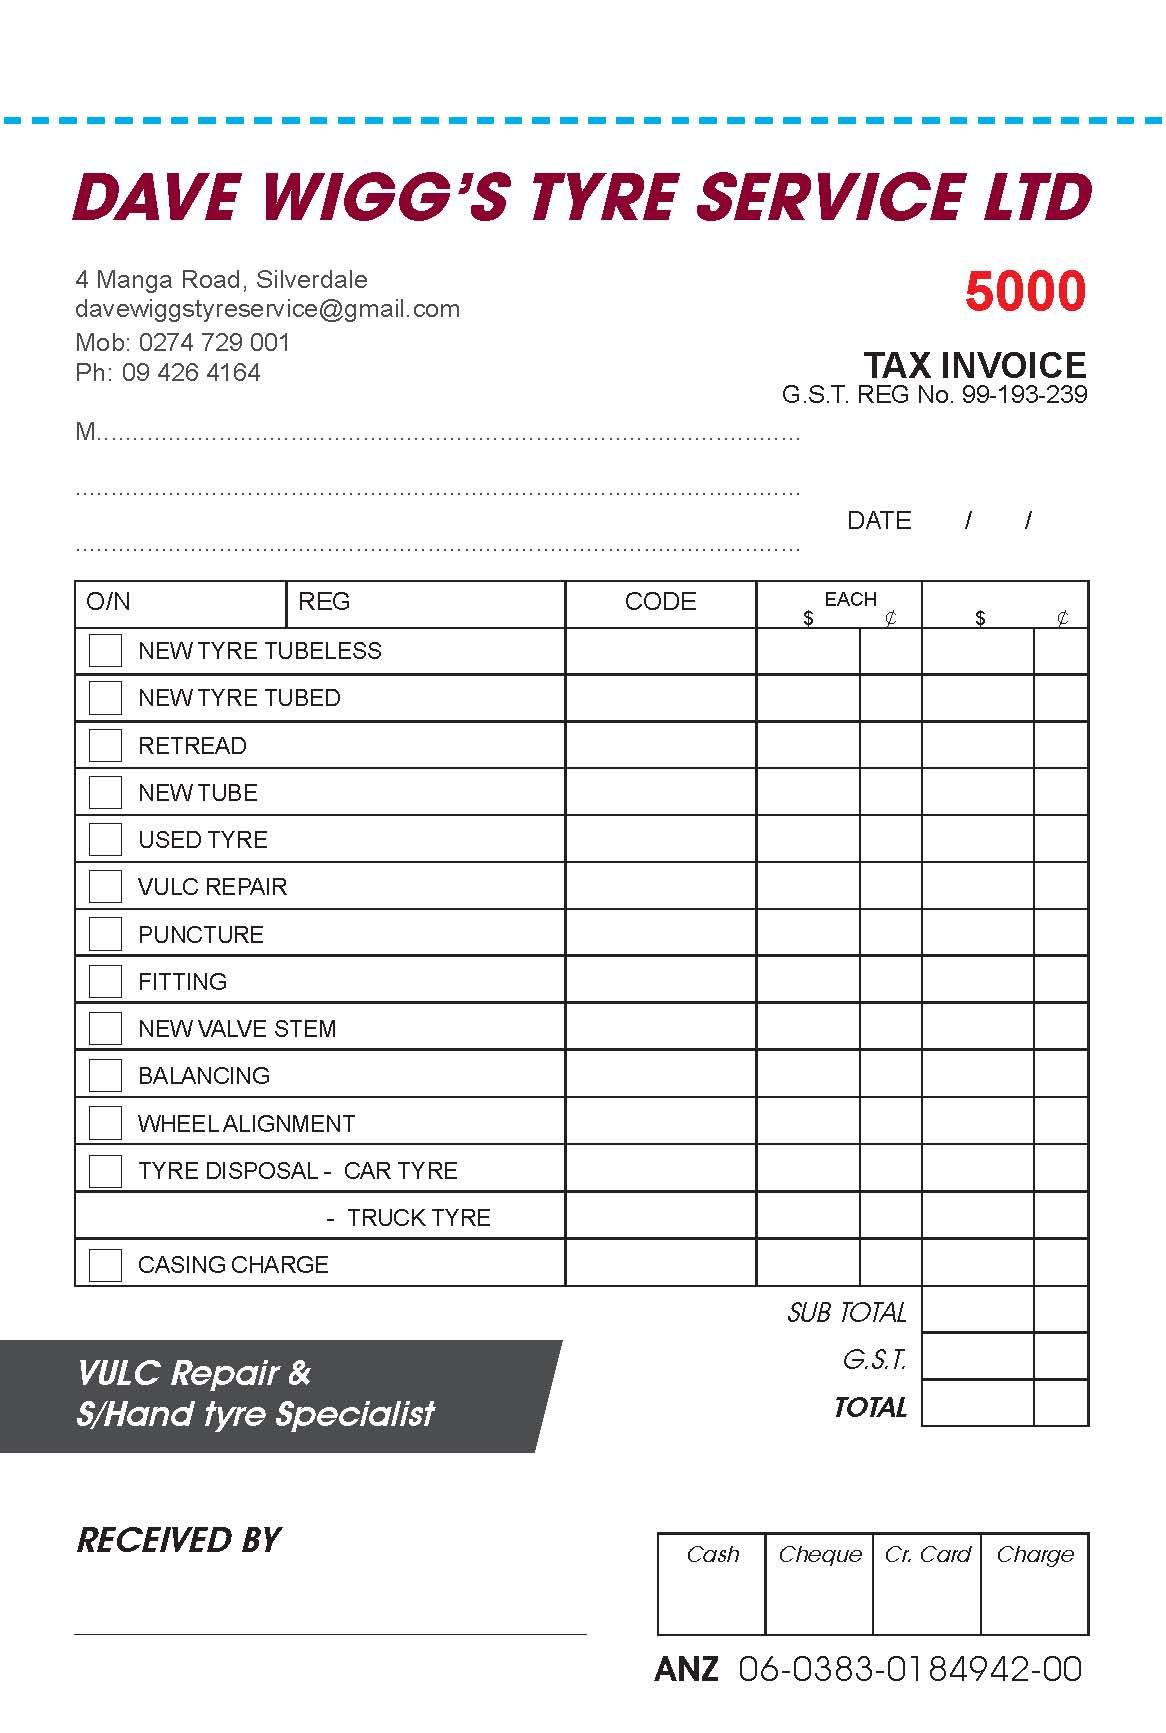 New Invoice Book For Dave Wigg Tyres Some Work Examples Pinterest - Work invoice book